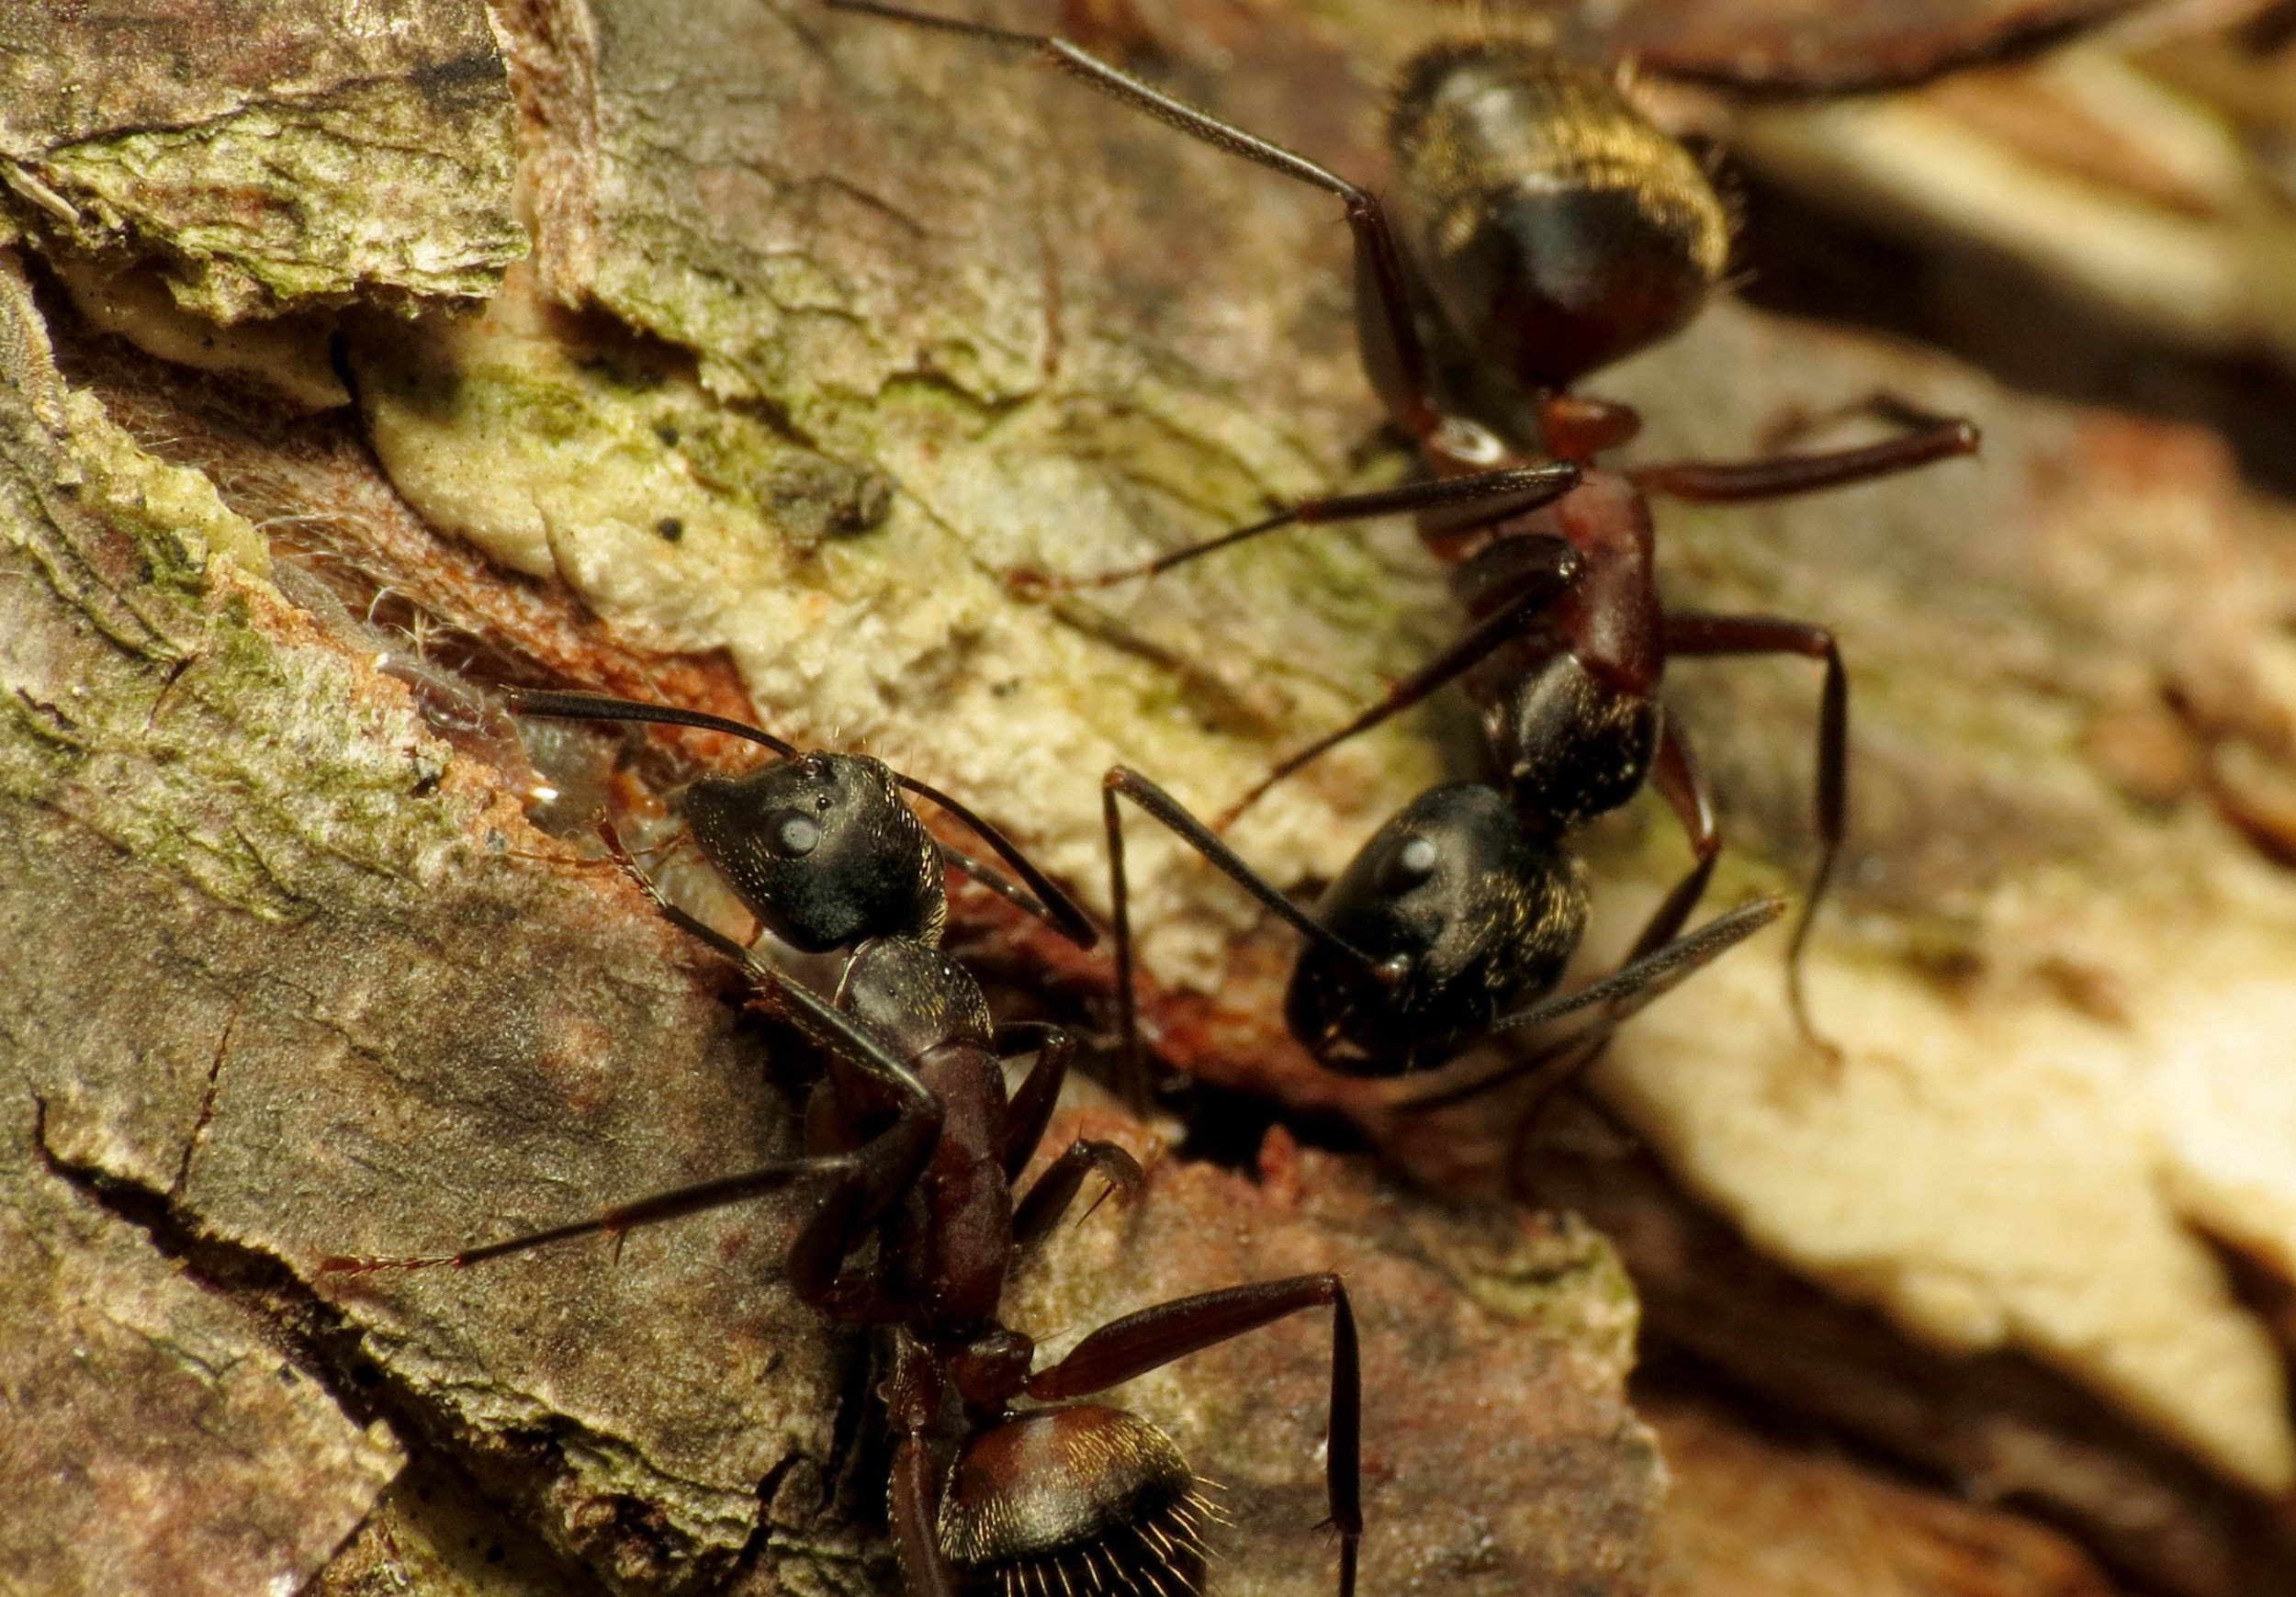 Carpenter_Ants_-_Flickr_-_treegrow